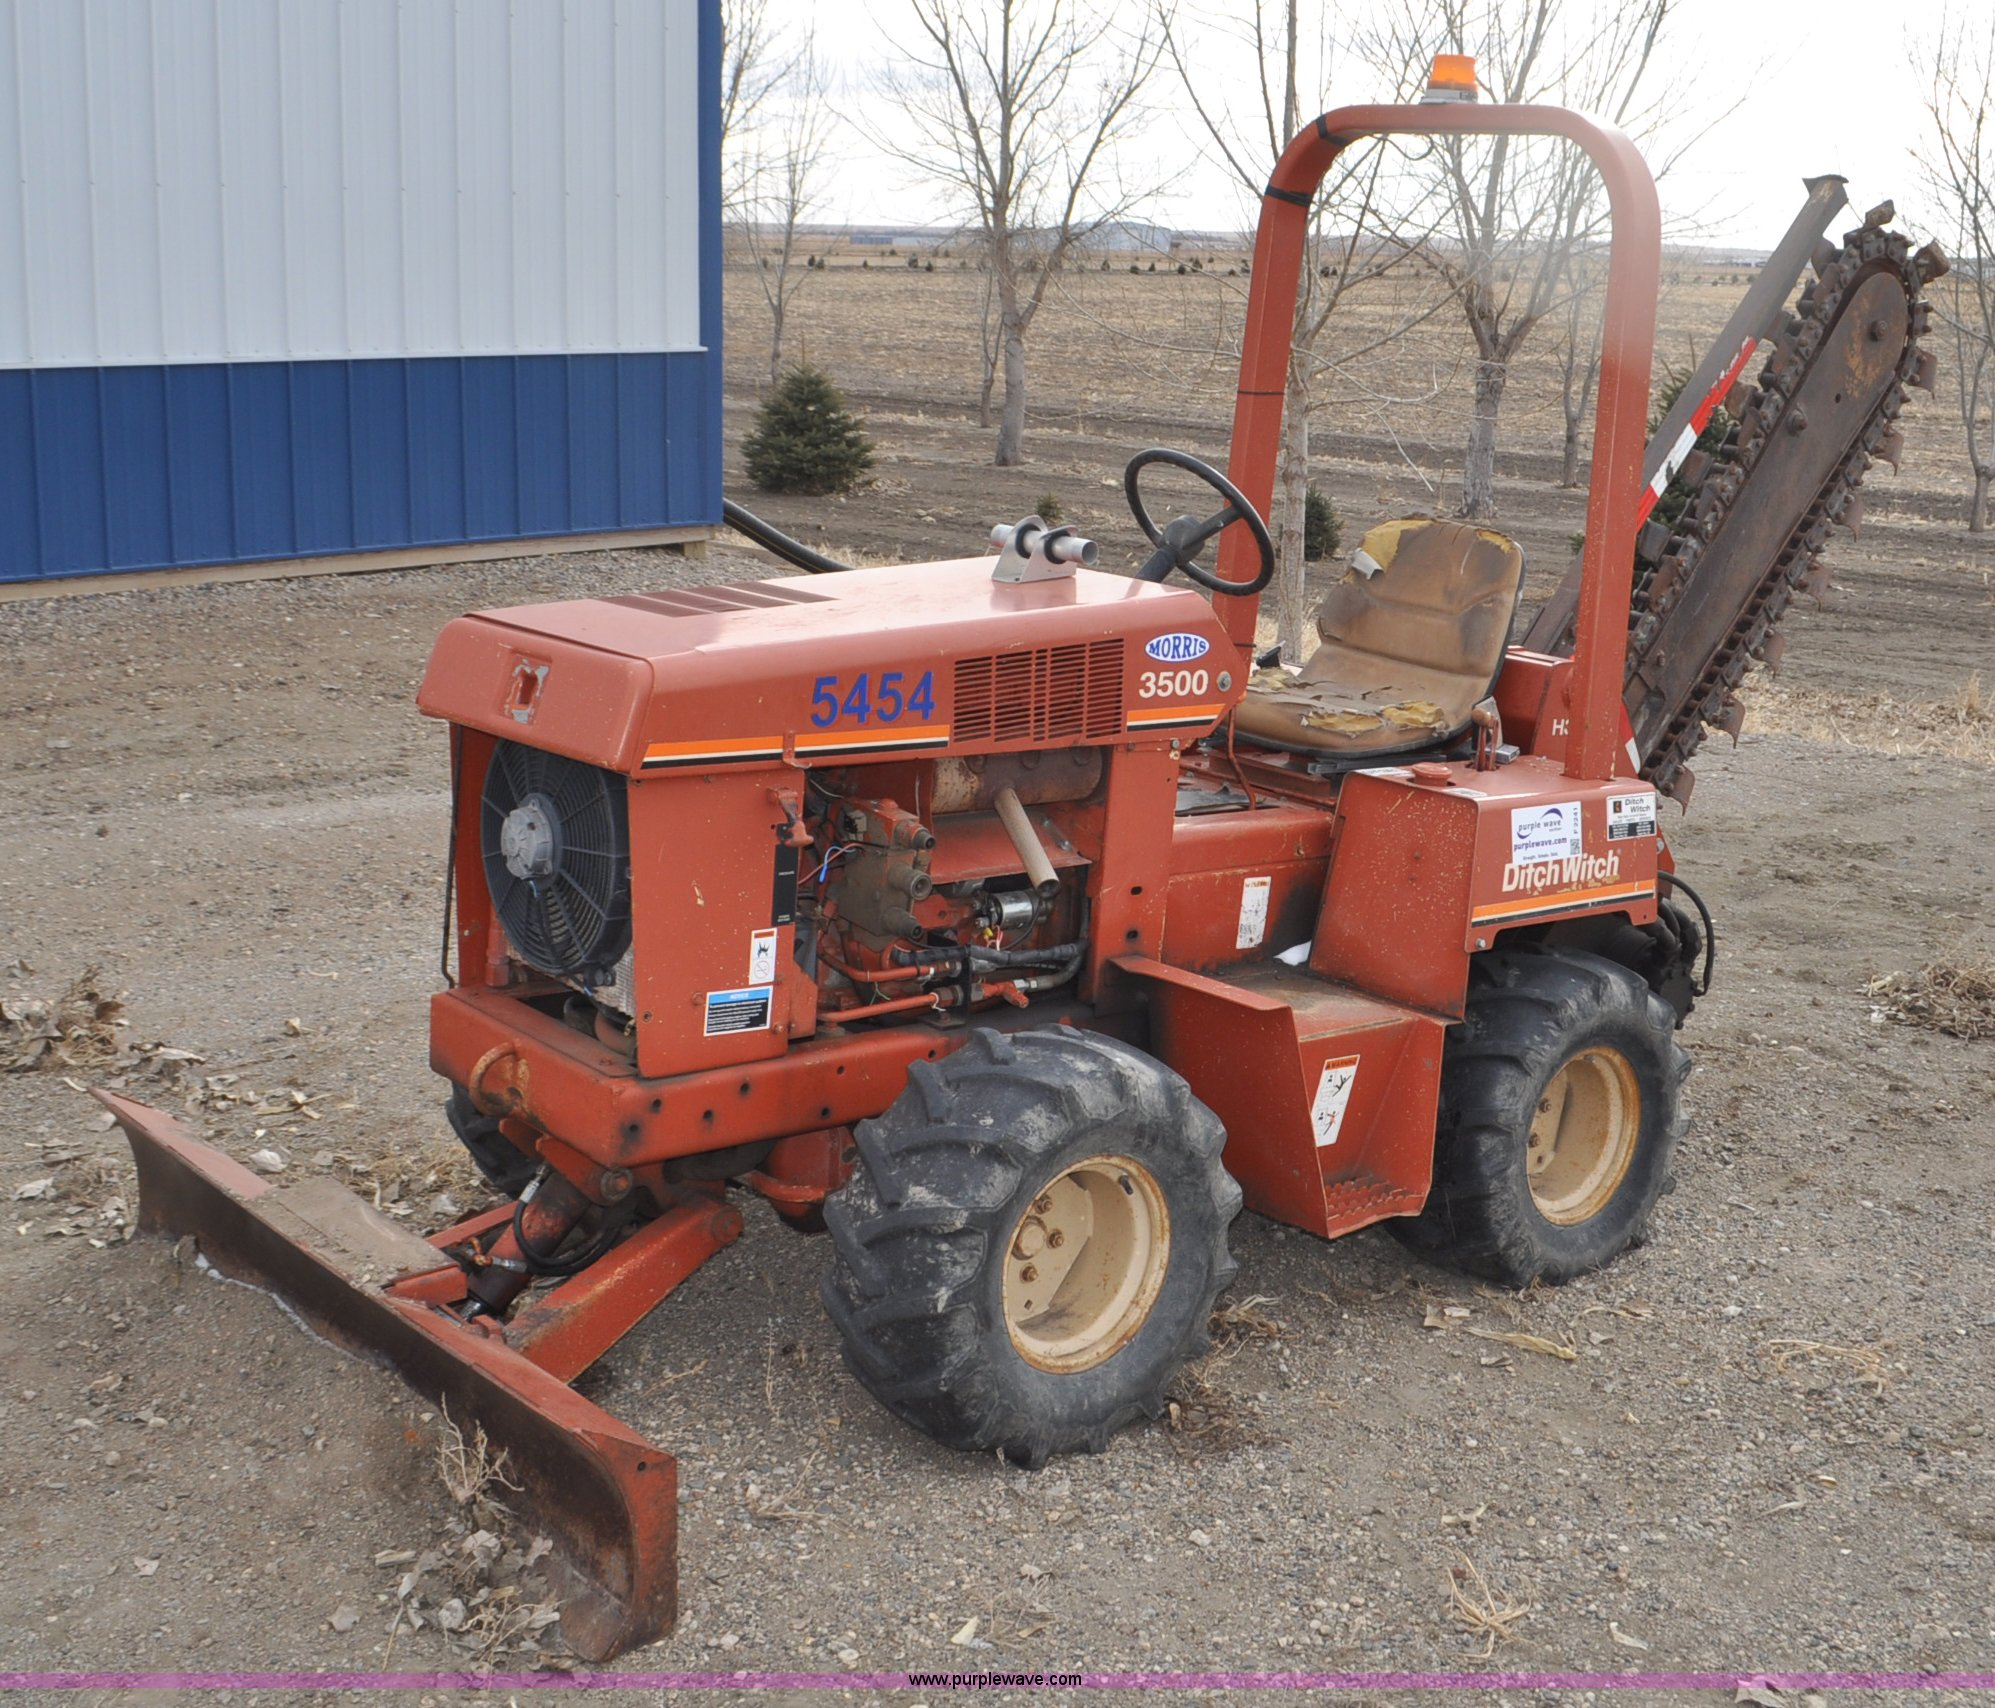 Ditch Witch 3500 trencher | Item F2241 | SOLD! March 26 Cons